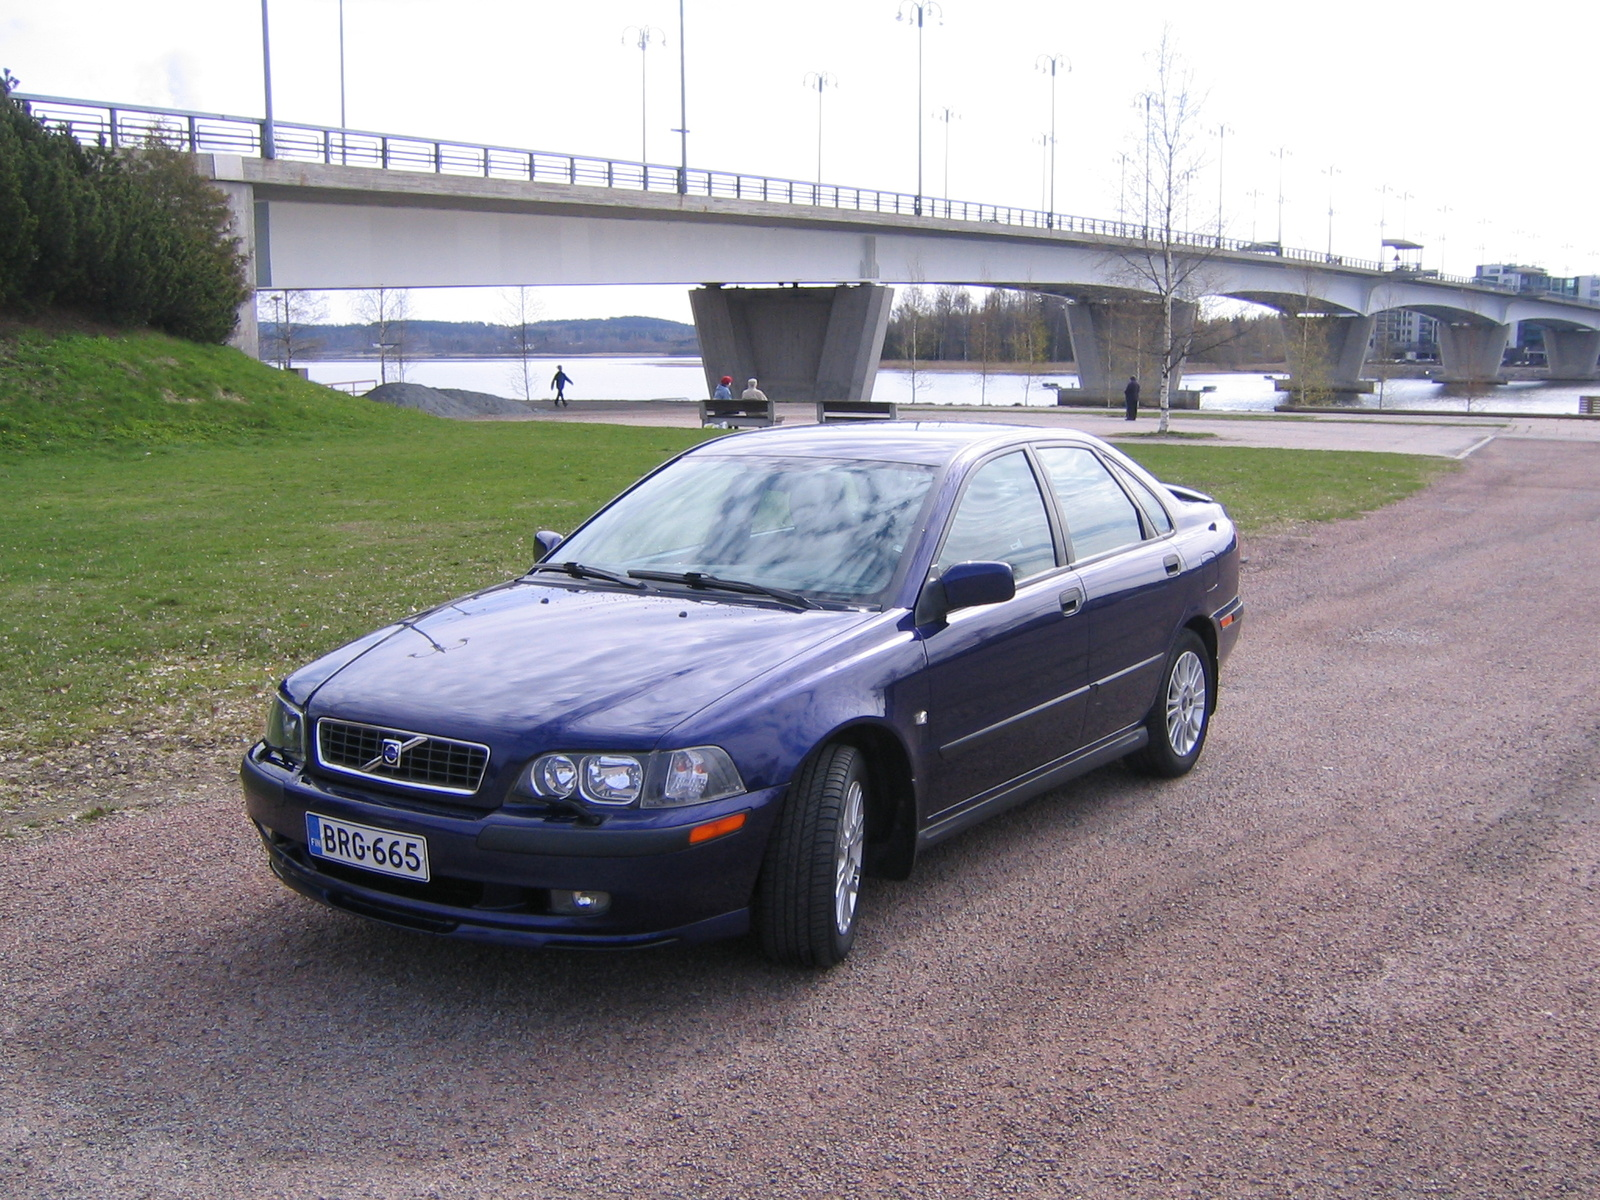 2002 Volvo S40 Owners Manual Volvo Motors